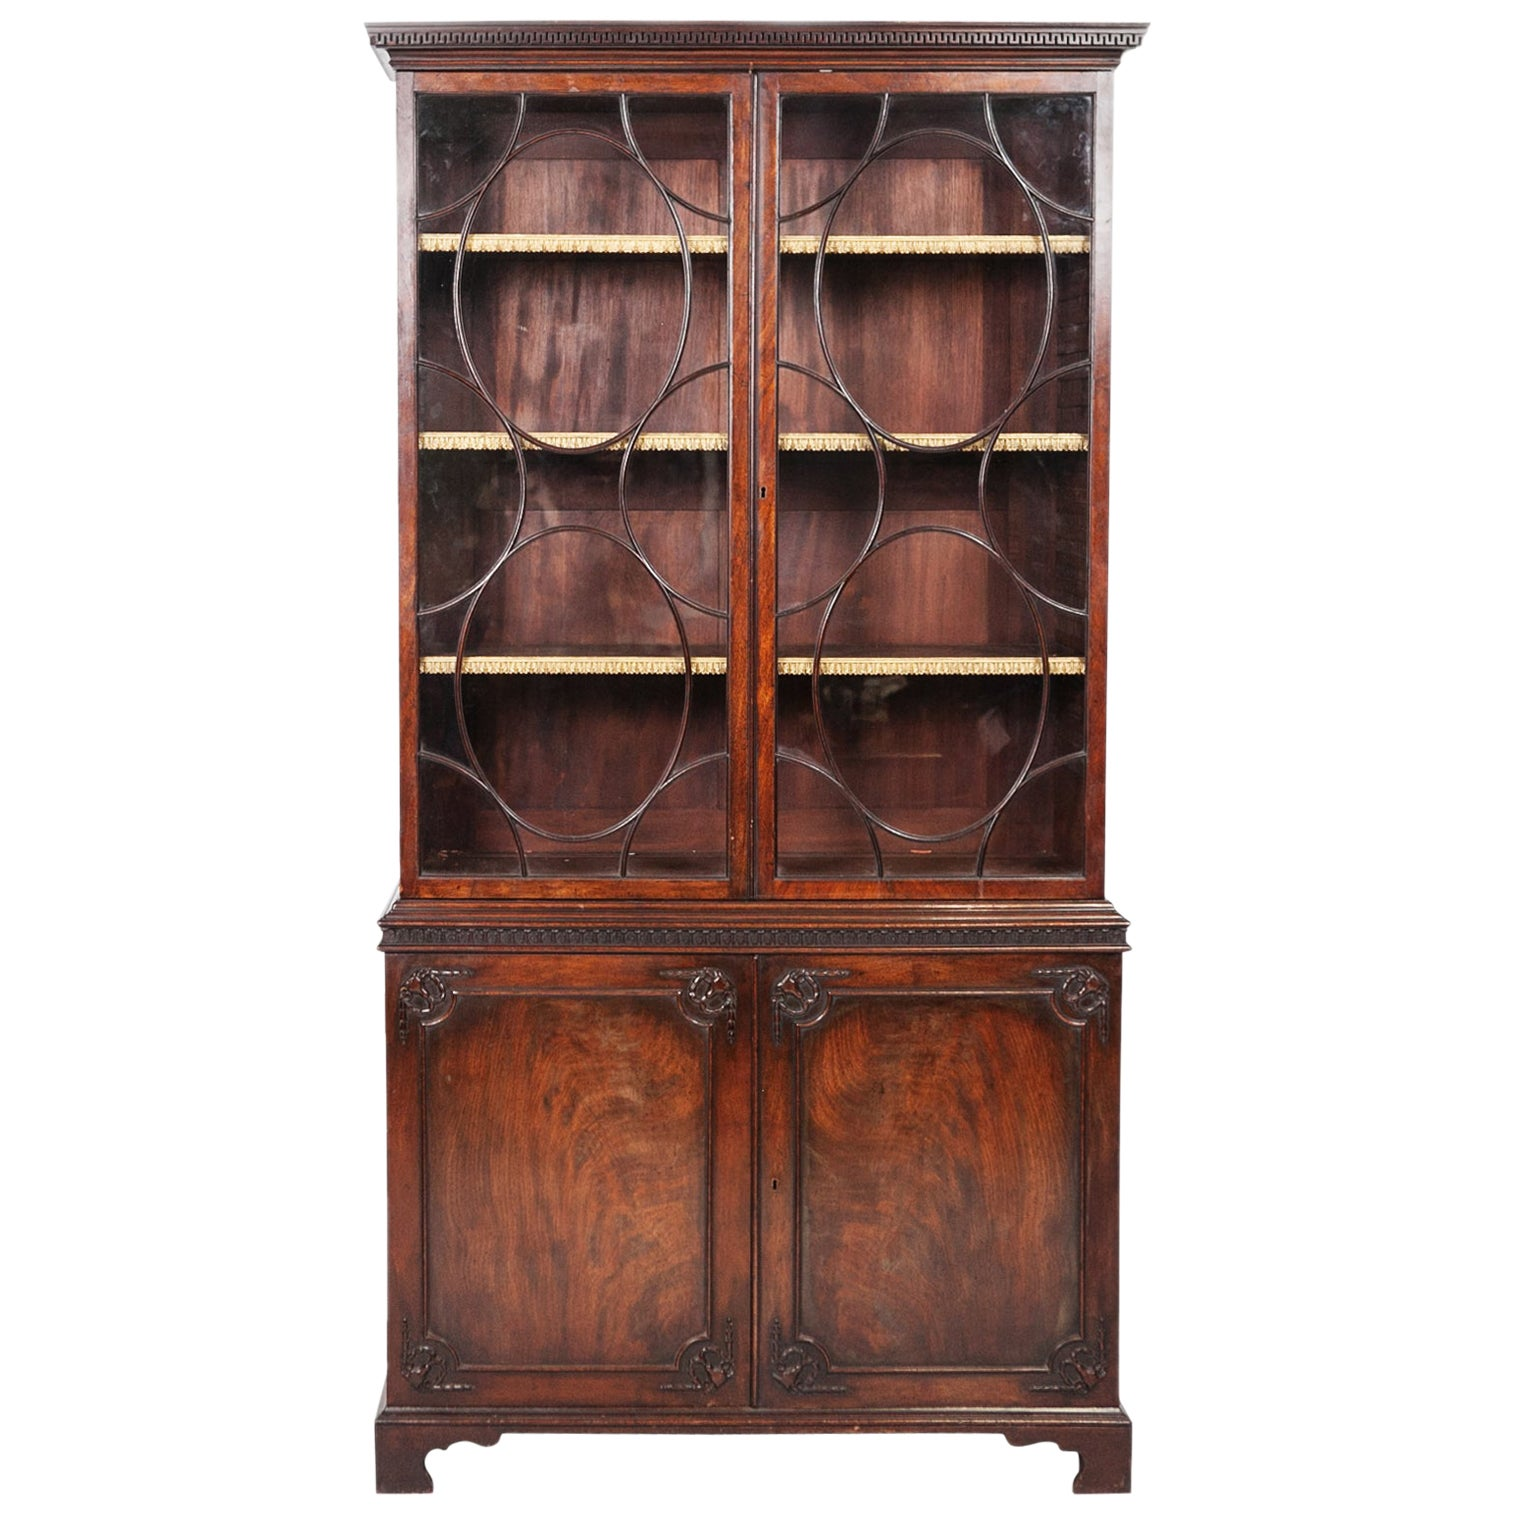 George III Mahogany Two-Door Bookcase